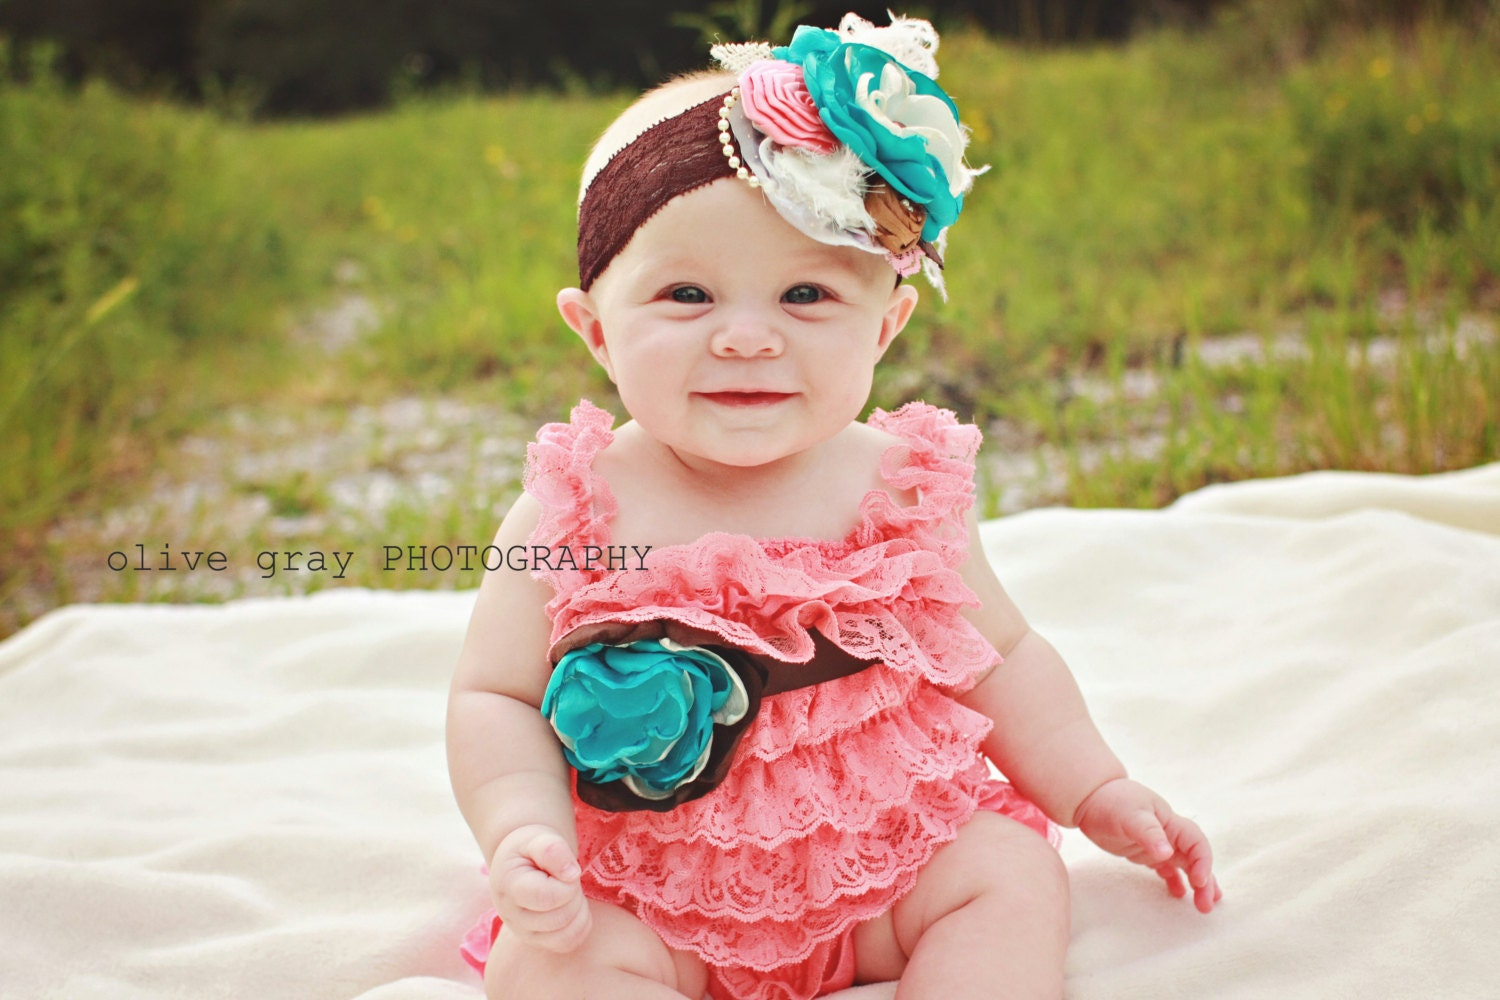 Fall Lace Romper-Couture Baby Outfit-Ruffle Romper-Lace Petti Romper-Cake Smash Outfit-1st Birthday Outfit-Flower Girl-Photo Prop - AvryCoutureCreations